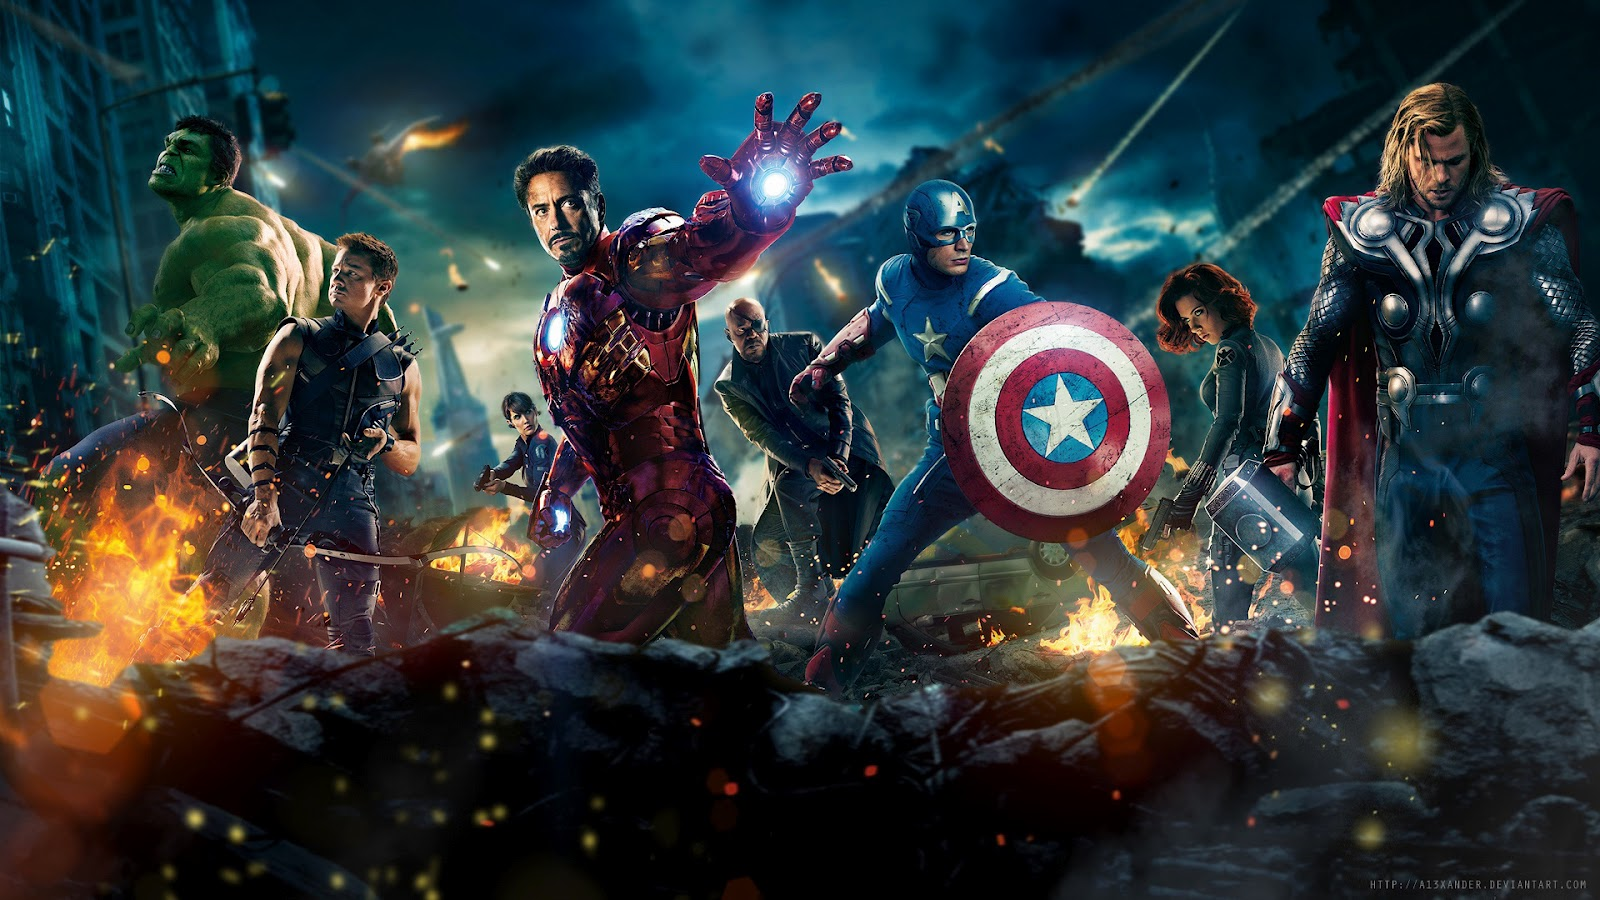 image - avengers-2012-full-hd-wallpaper-1920x1080-movie-1080p